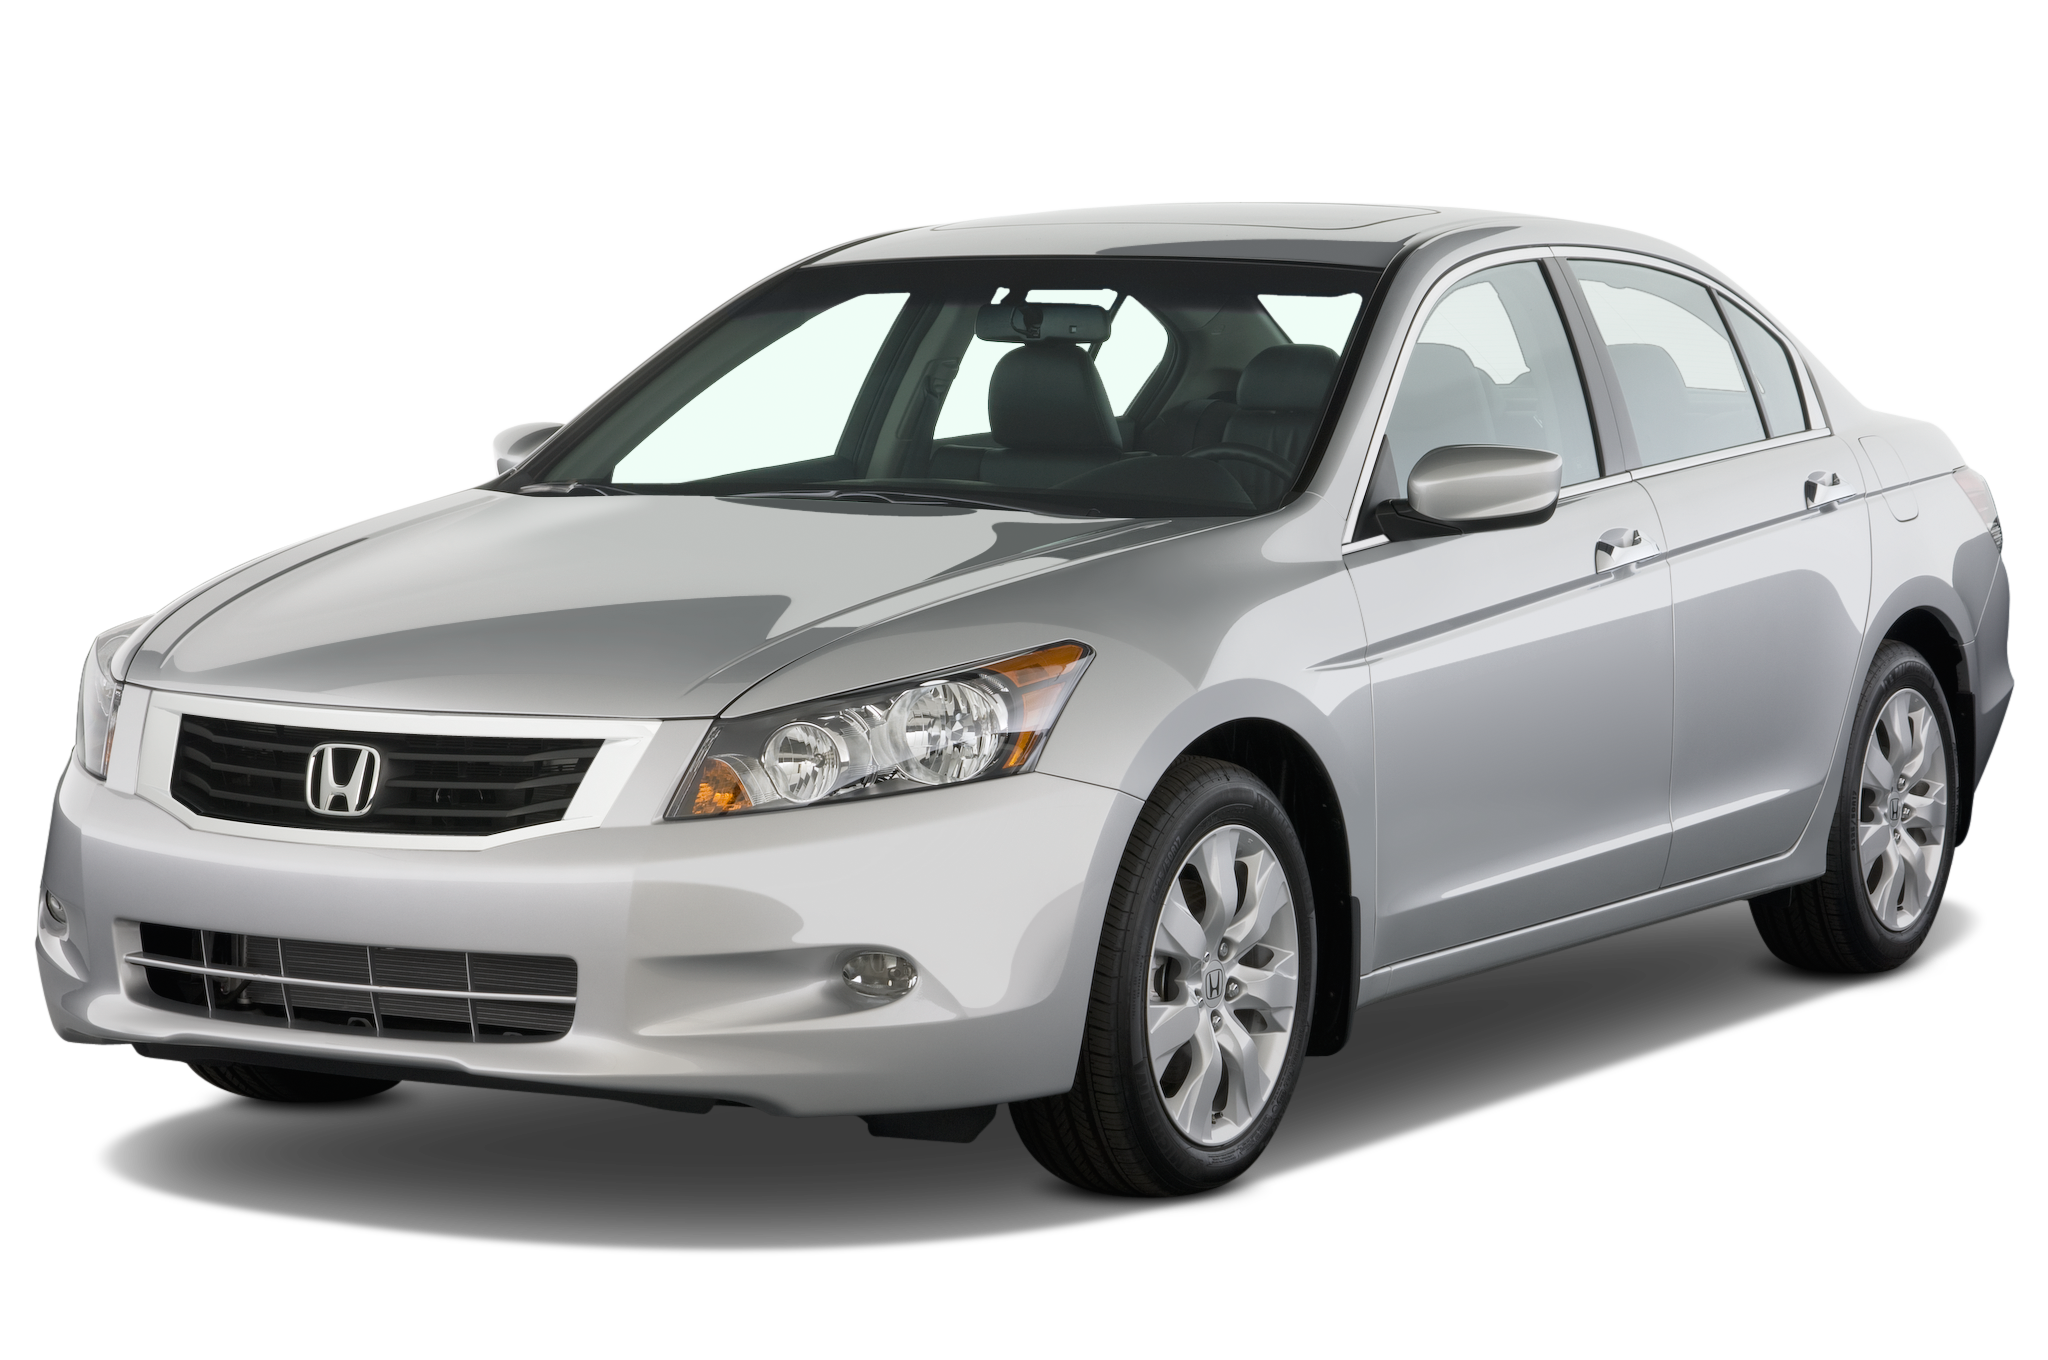 2010 Honda Accord Crosstour Pricing Revealed